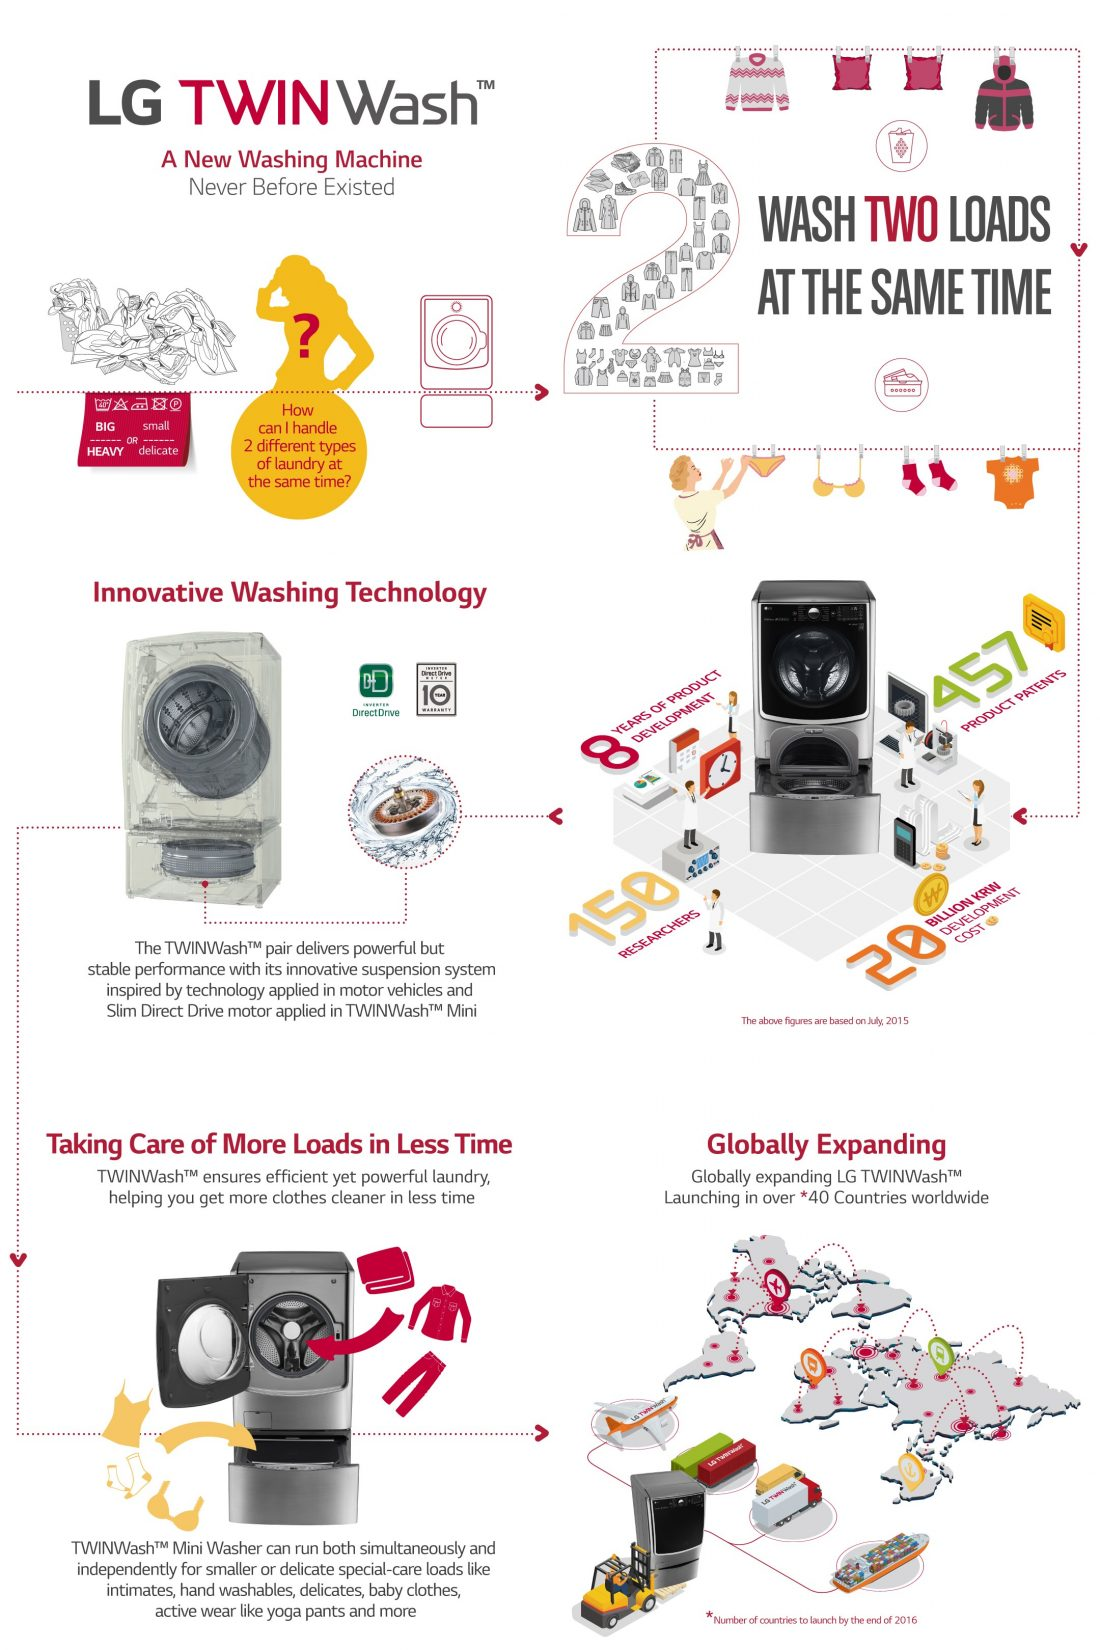 This infographic introduces the key features and R&D investment indices of the LG TWINWash washing machines that deal with two laundry loads at once to reduce laundry time.